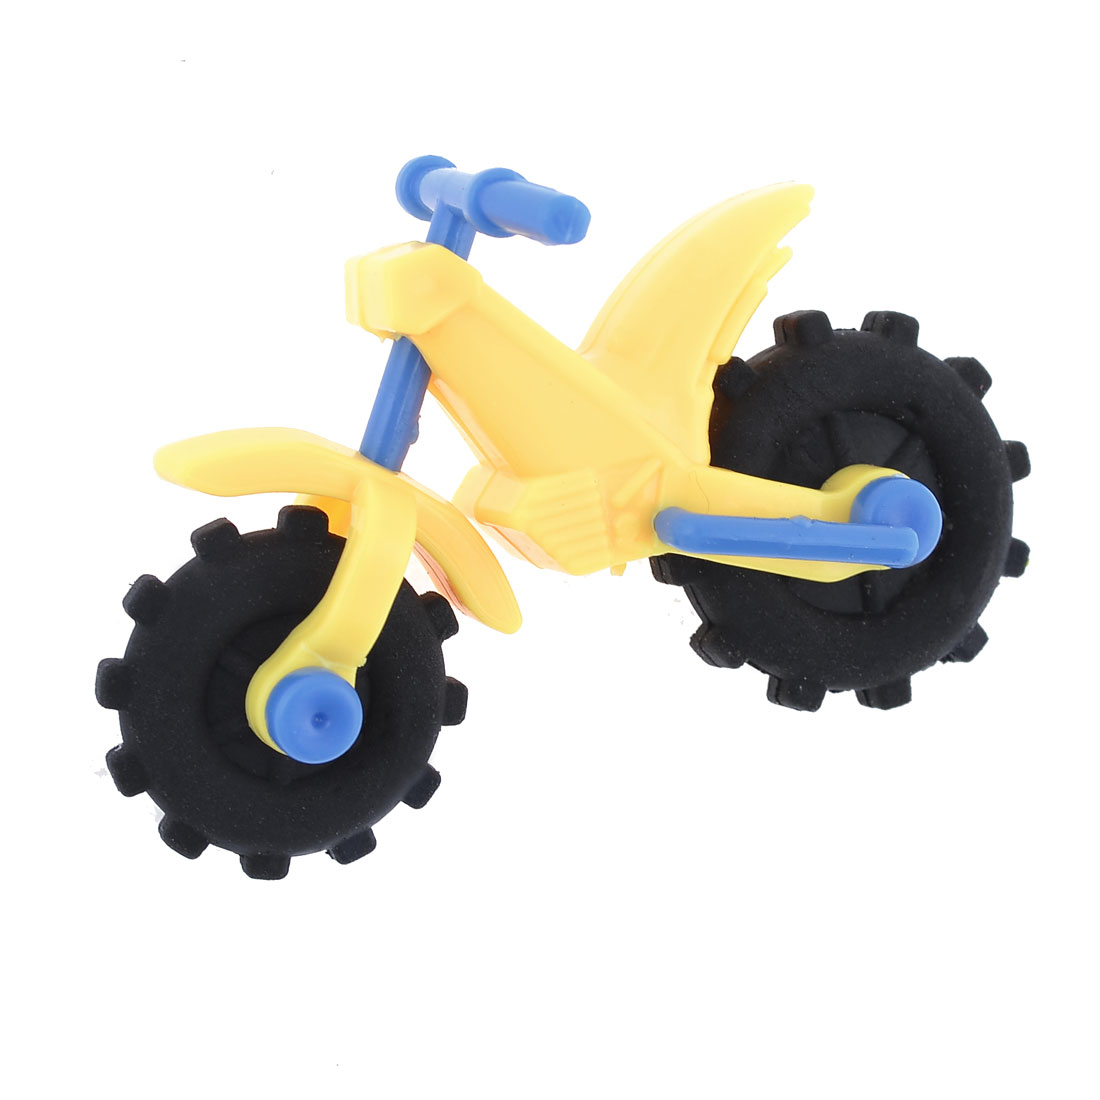 Mini Motorcycle Design Black Rubber Wheel Eraser Toy for Children